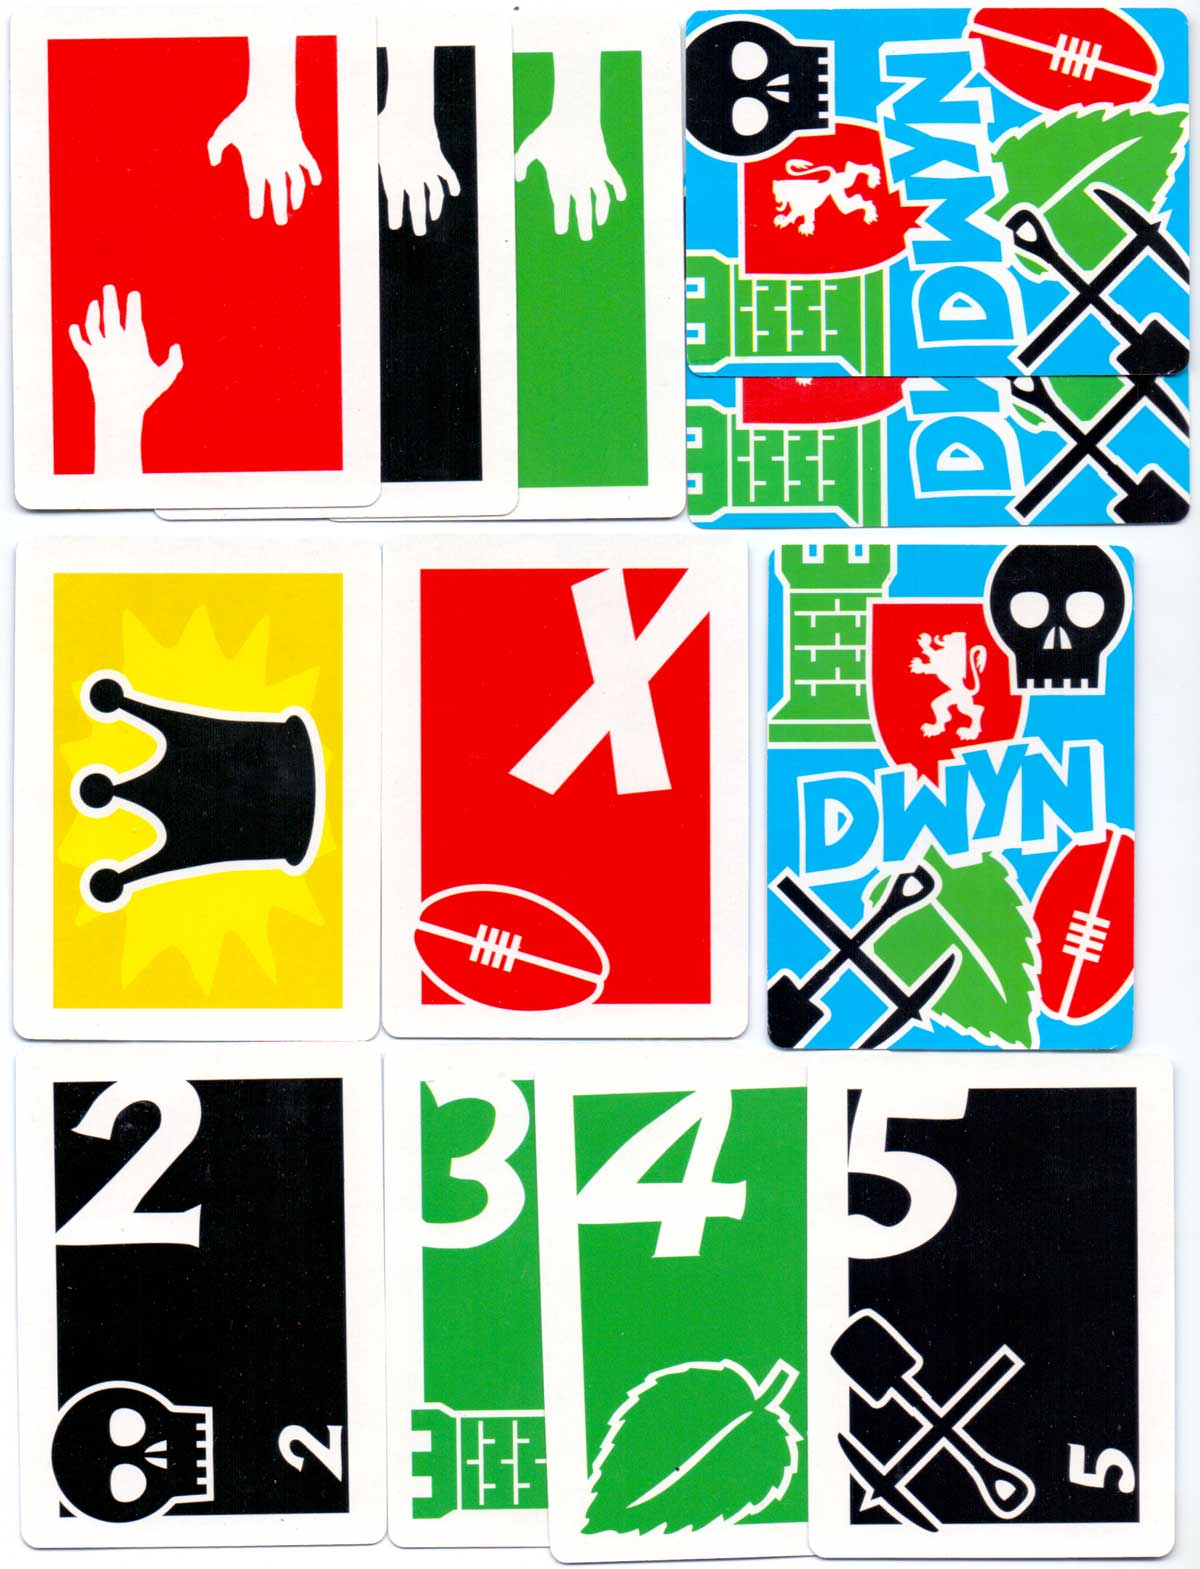 Dwyn - a card game about Welsh history designed by Simon Grennan and Christopher Sperandio, 2006